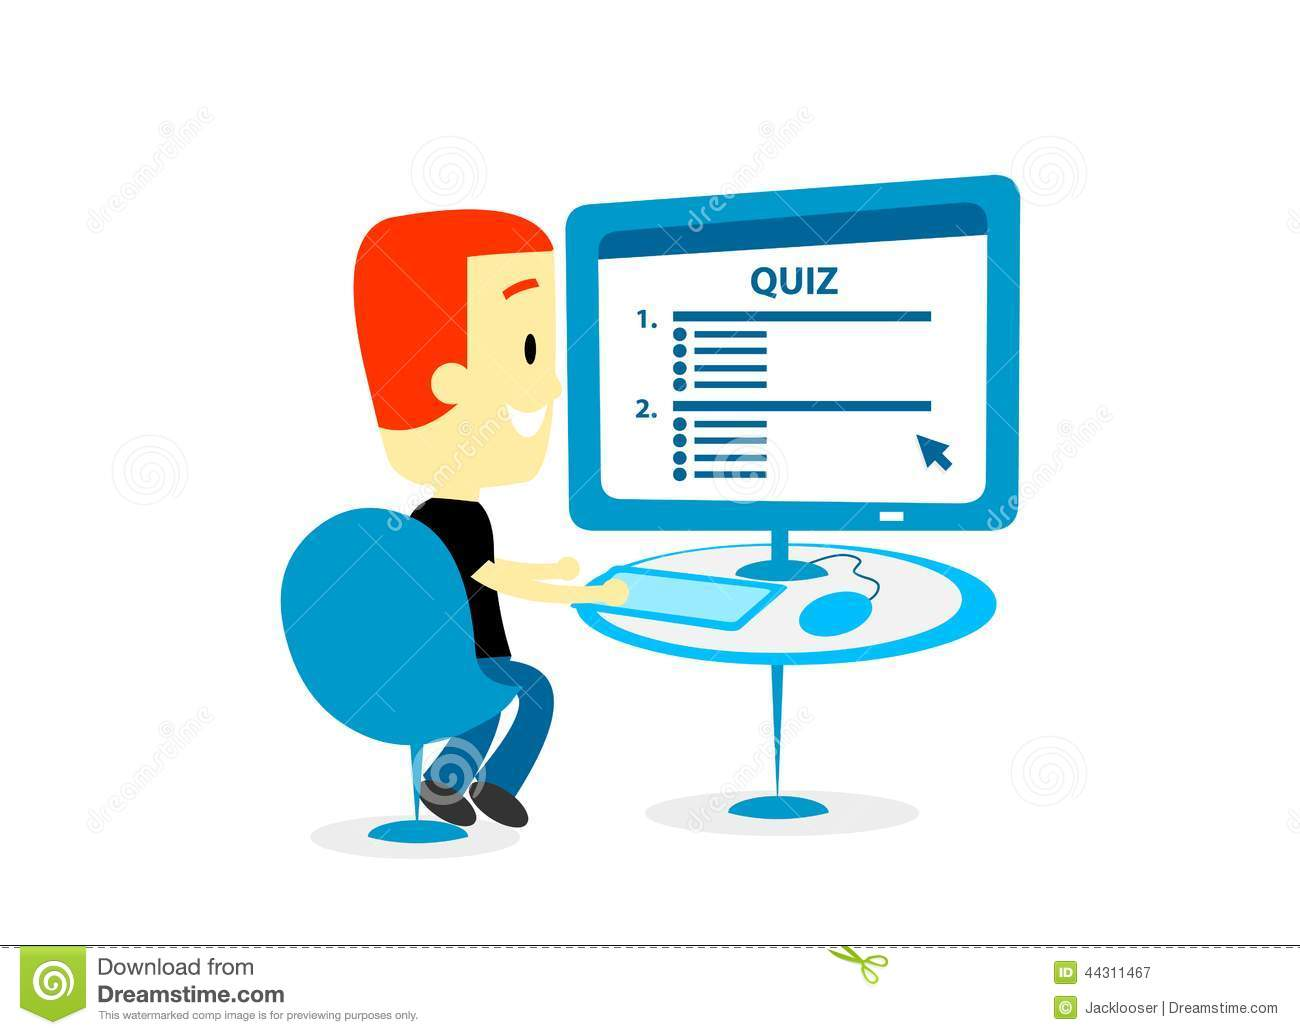 quiz in computer This software program allows you to generate your own on-screen interactive quizzes supports multiple choice and fill in the blank style tests quizzes can also be printed out for use in conventional pencil/paper tests.